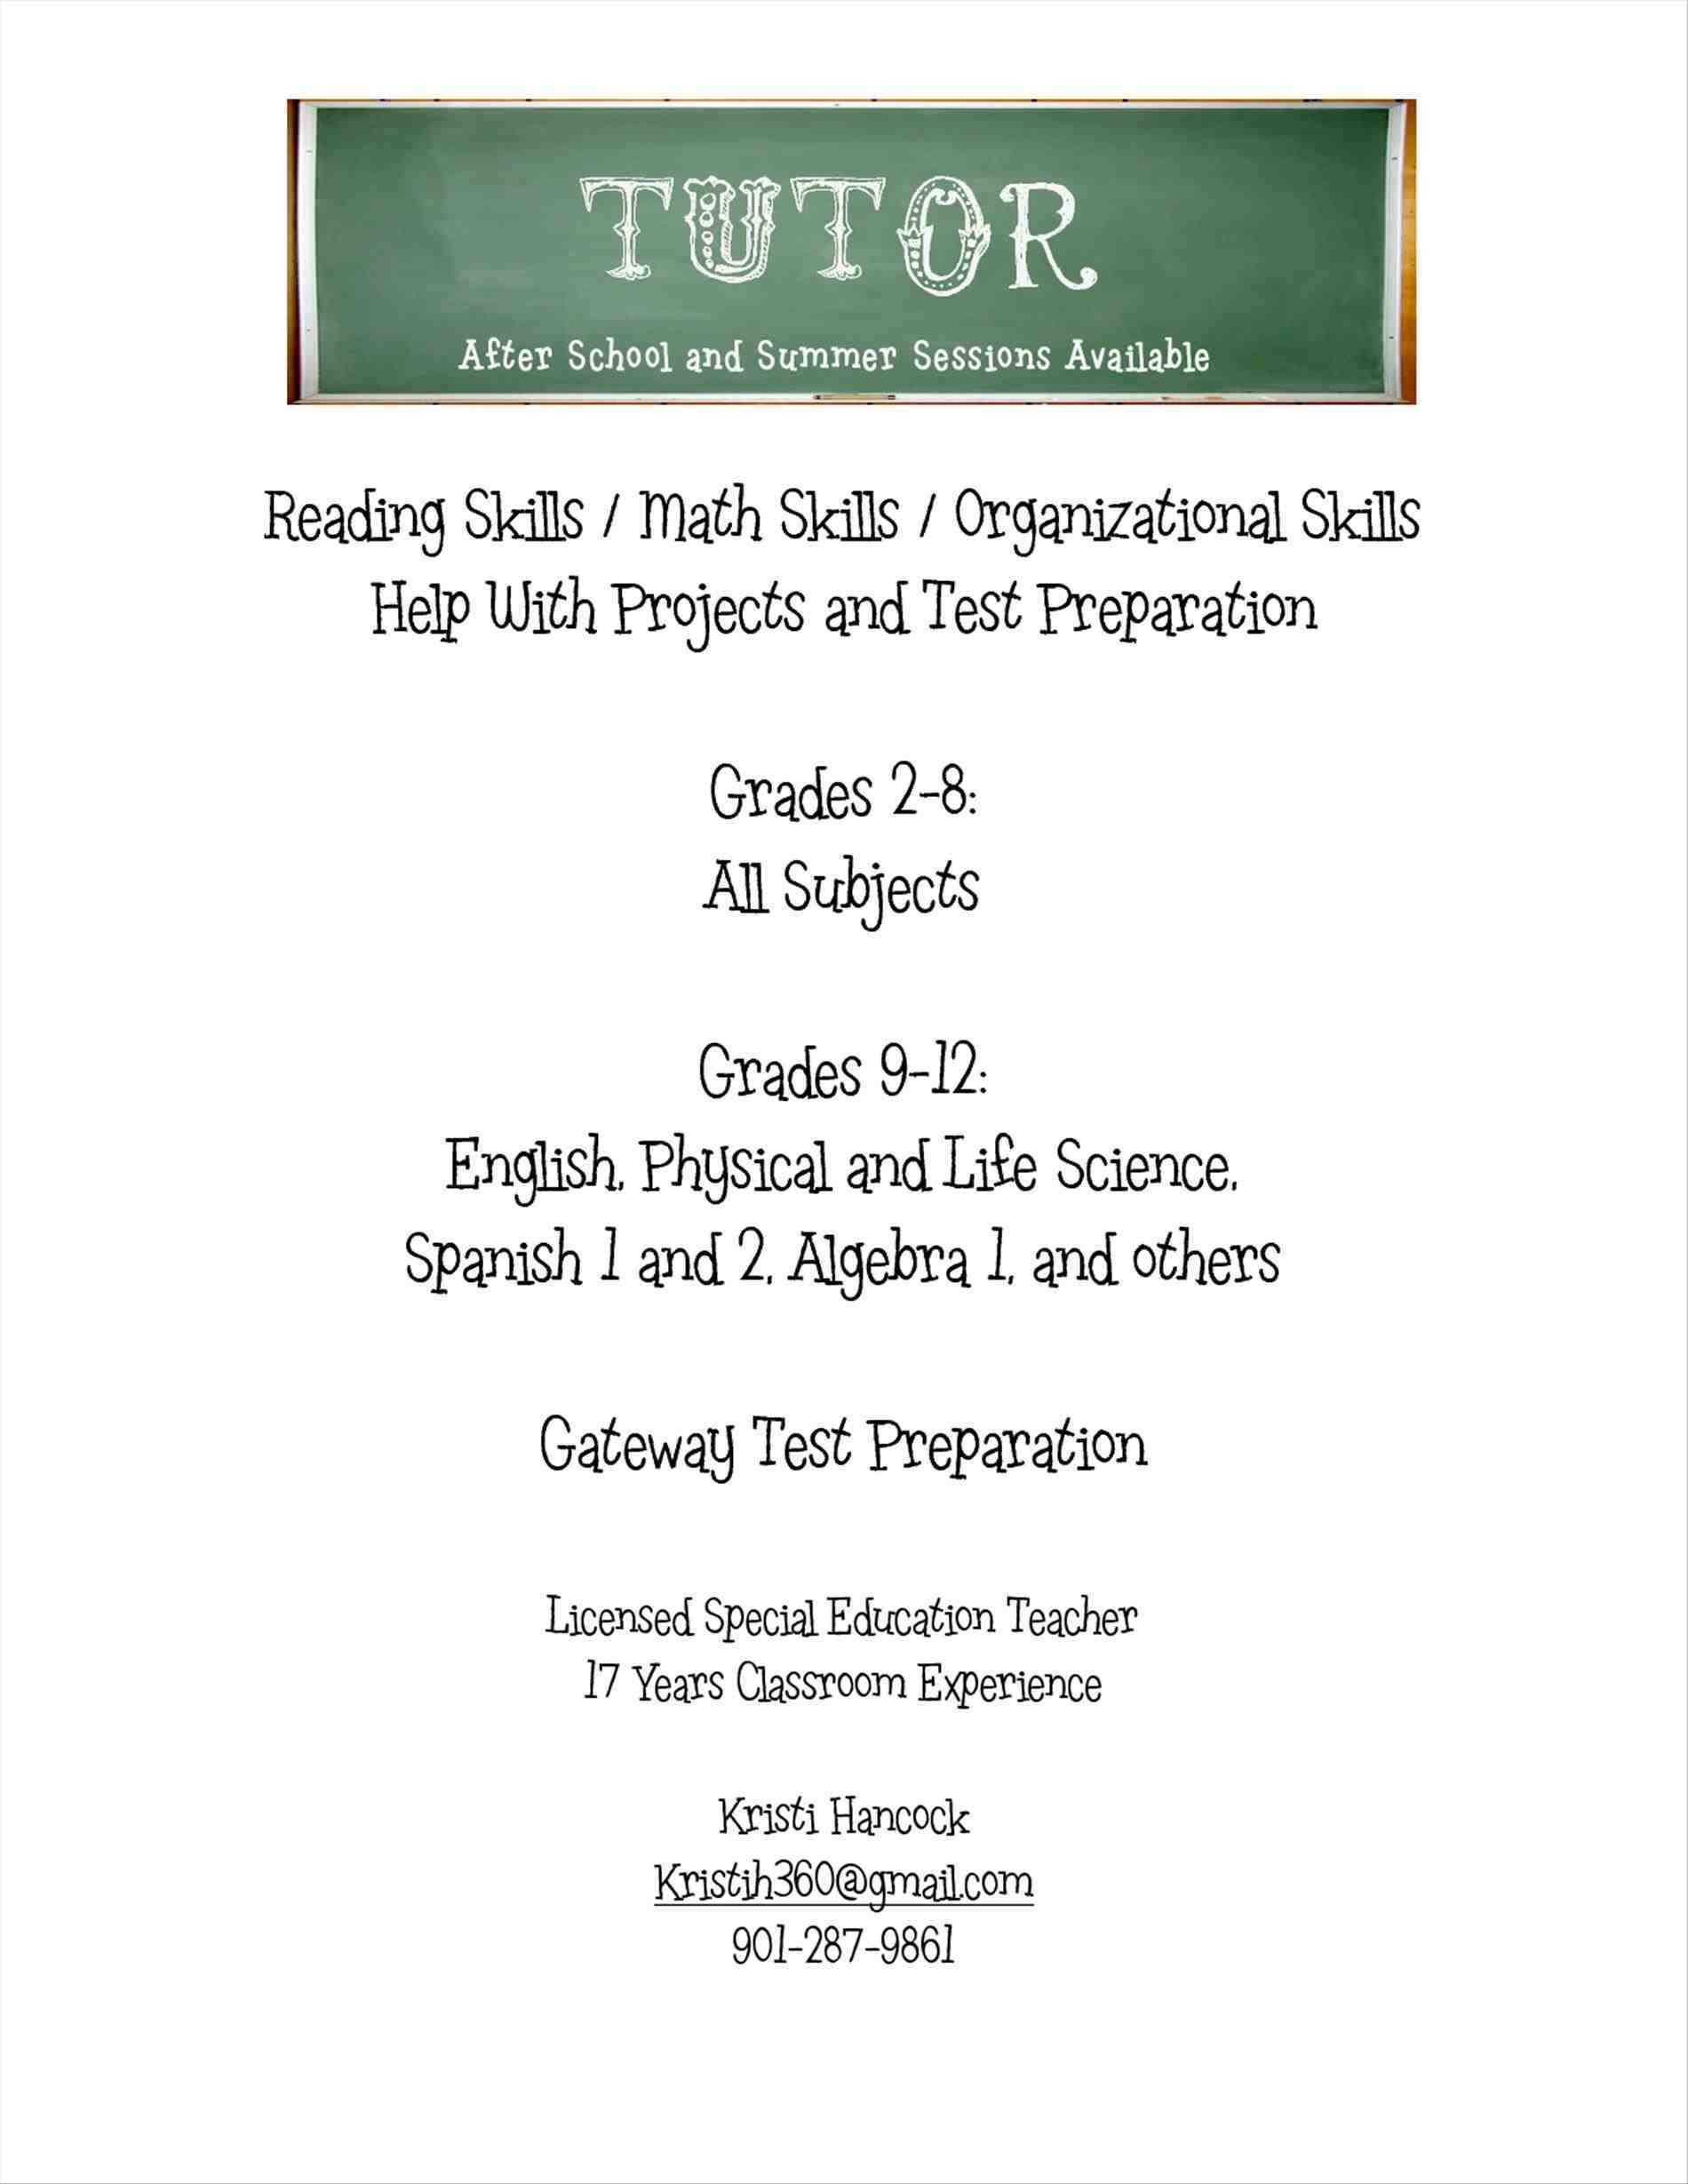 Tutoring Flyer Template Free from legaldbol.com